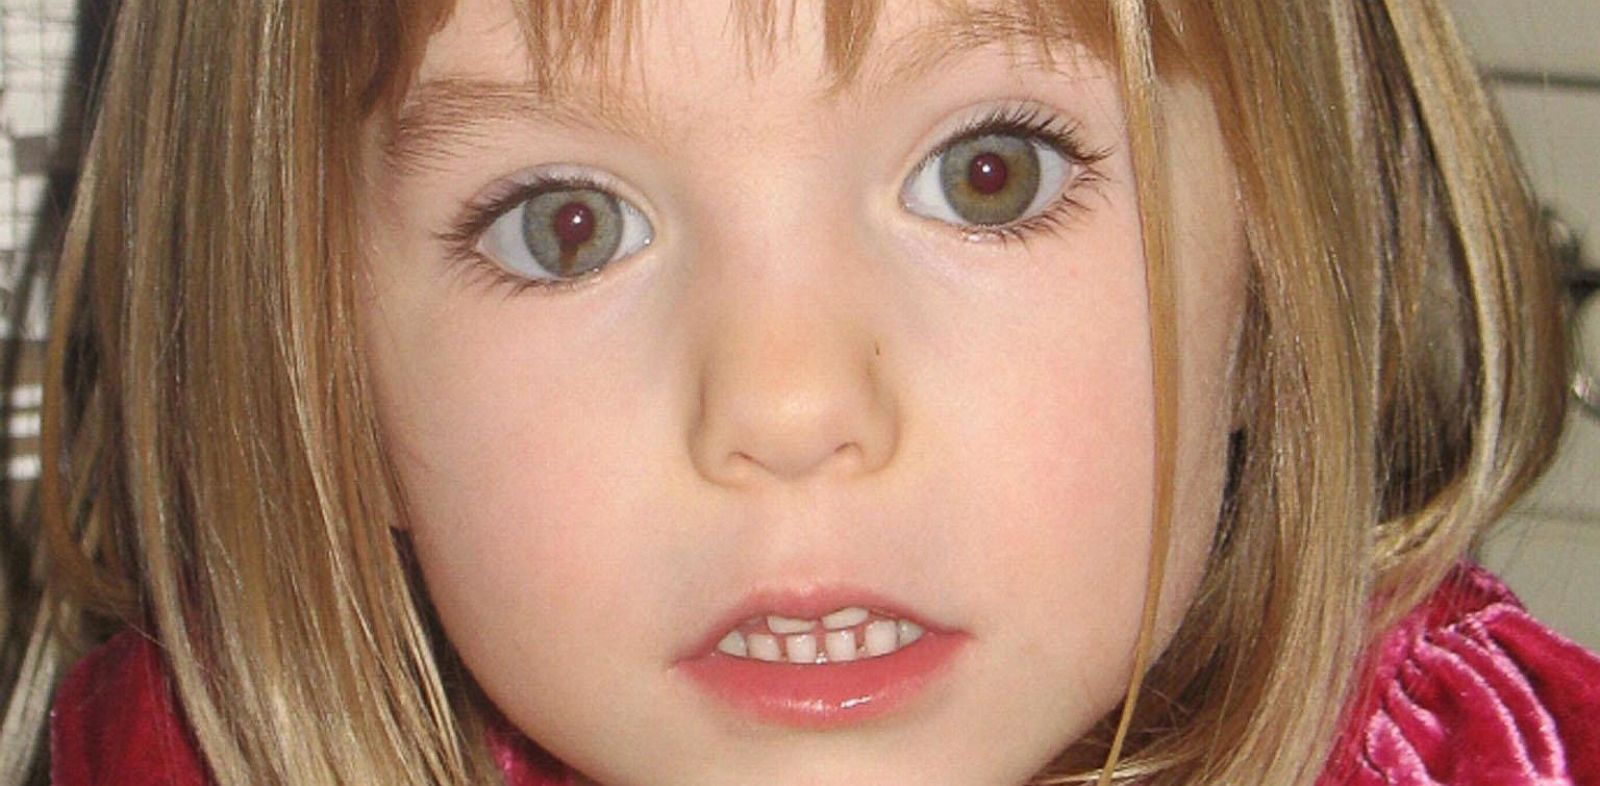 PHOTO: Madeleine McCann went missing in 2007